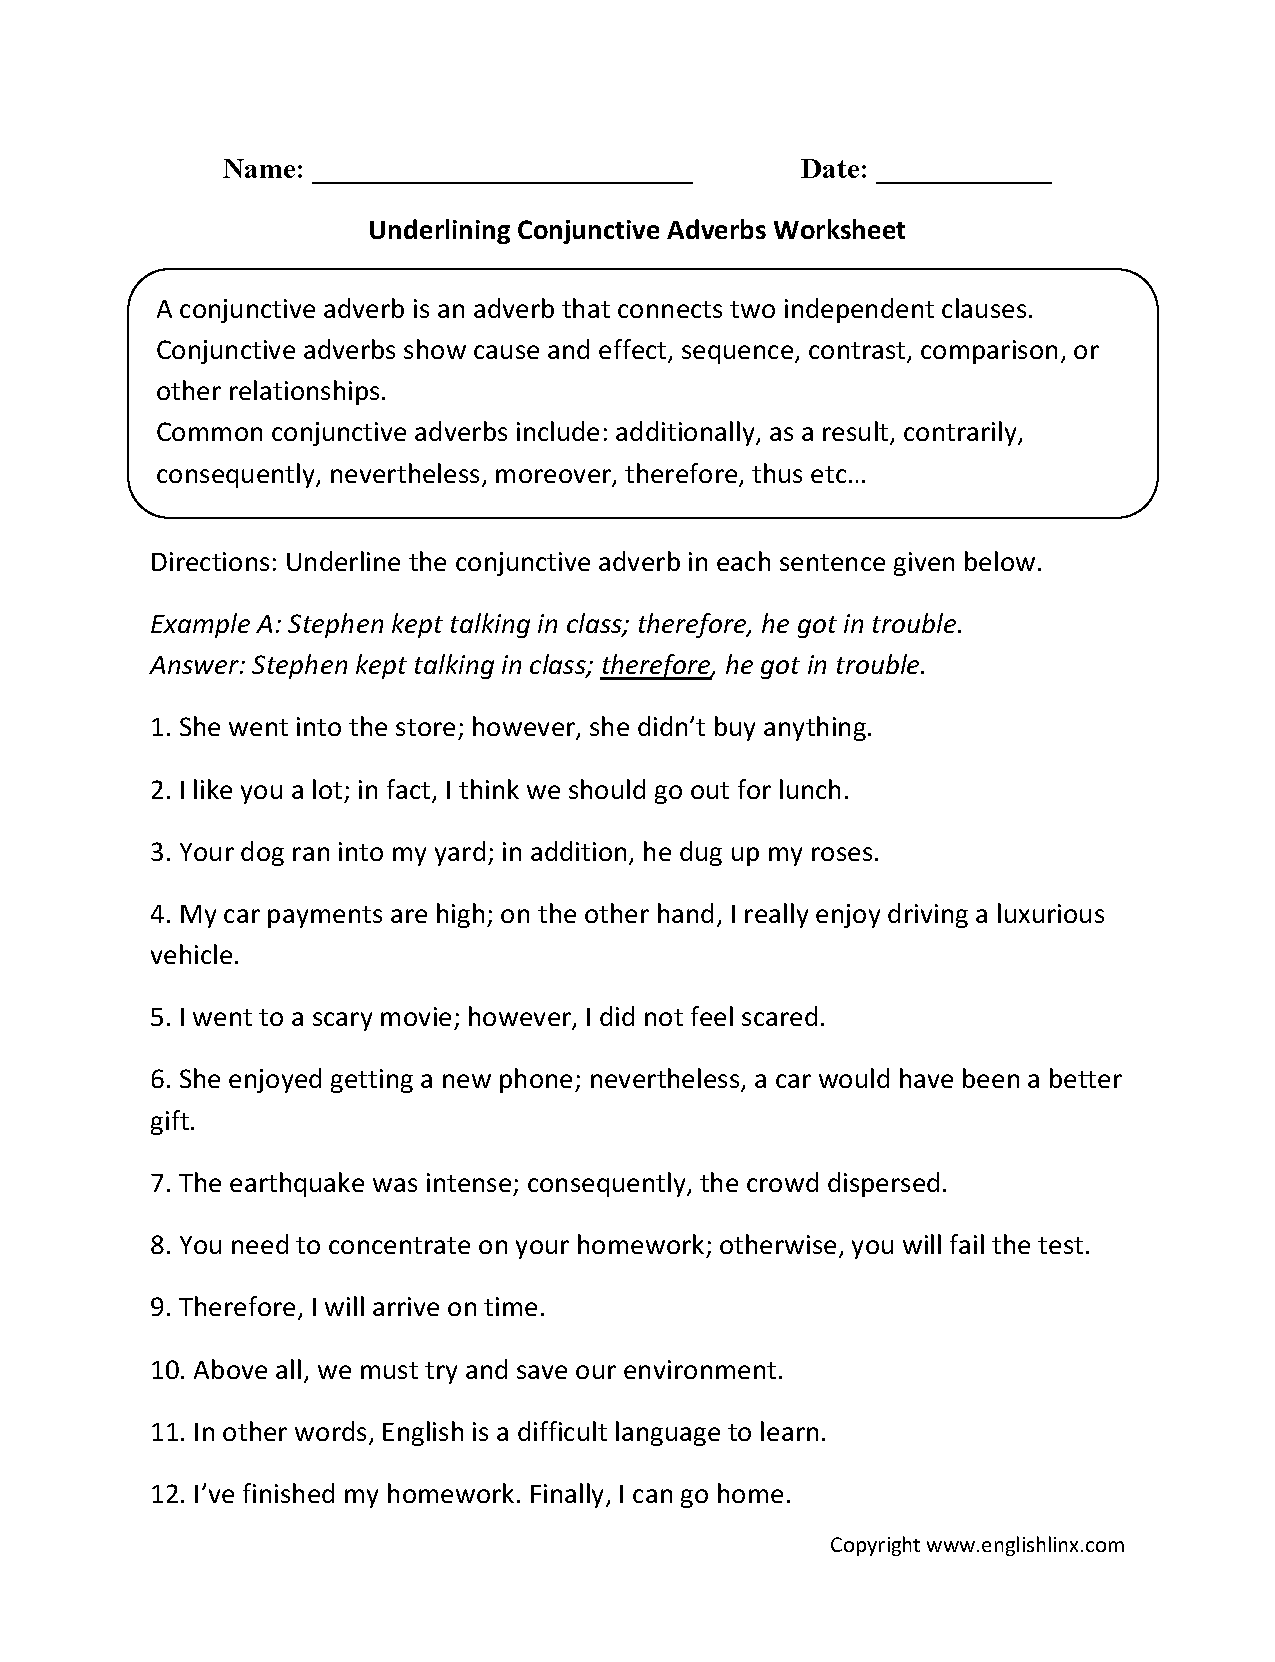 Weirdmailus  Seductive Englishlinxcom  Conjunctions Worksheets With Hot Worksheet With Astounding Math  Worksheets Also Choir Worksheets In Addition Shame And Guilt Worksheets And Free Homophone Worksheets As Well As Biology Prefixes And Suffixes Worksheet Additionally Flower Dissection Worksheet From Englishlinxcom With Weirdmailus  Hot Englishlinxcom  Conjunctions Worksheets With Astounding Worksheet And Seductive Math  Worksheets Also Choir Worksheets In Addition Shame And Guilt Worksheets From Englishlinxcom